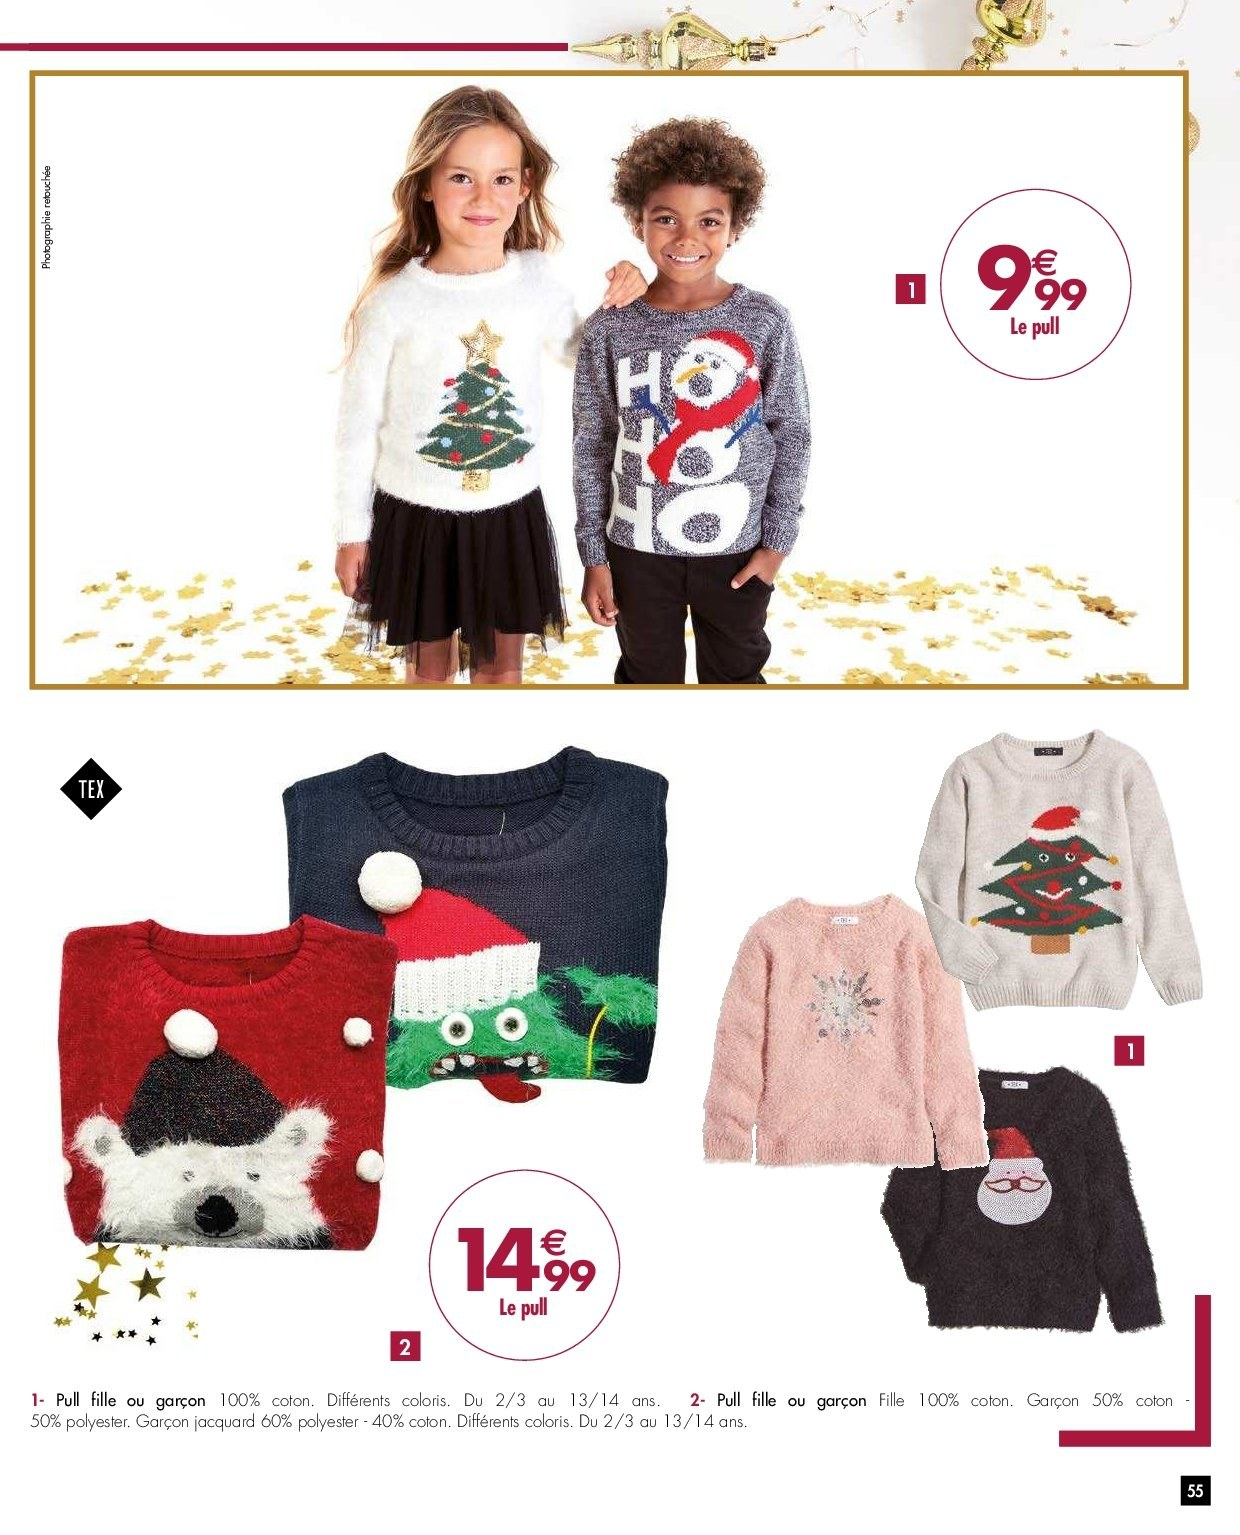 Catalogue Carrefour - 27.11.2018 - 03.12.2018. Page 55.